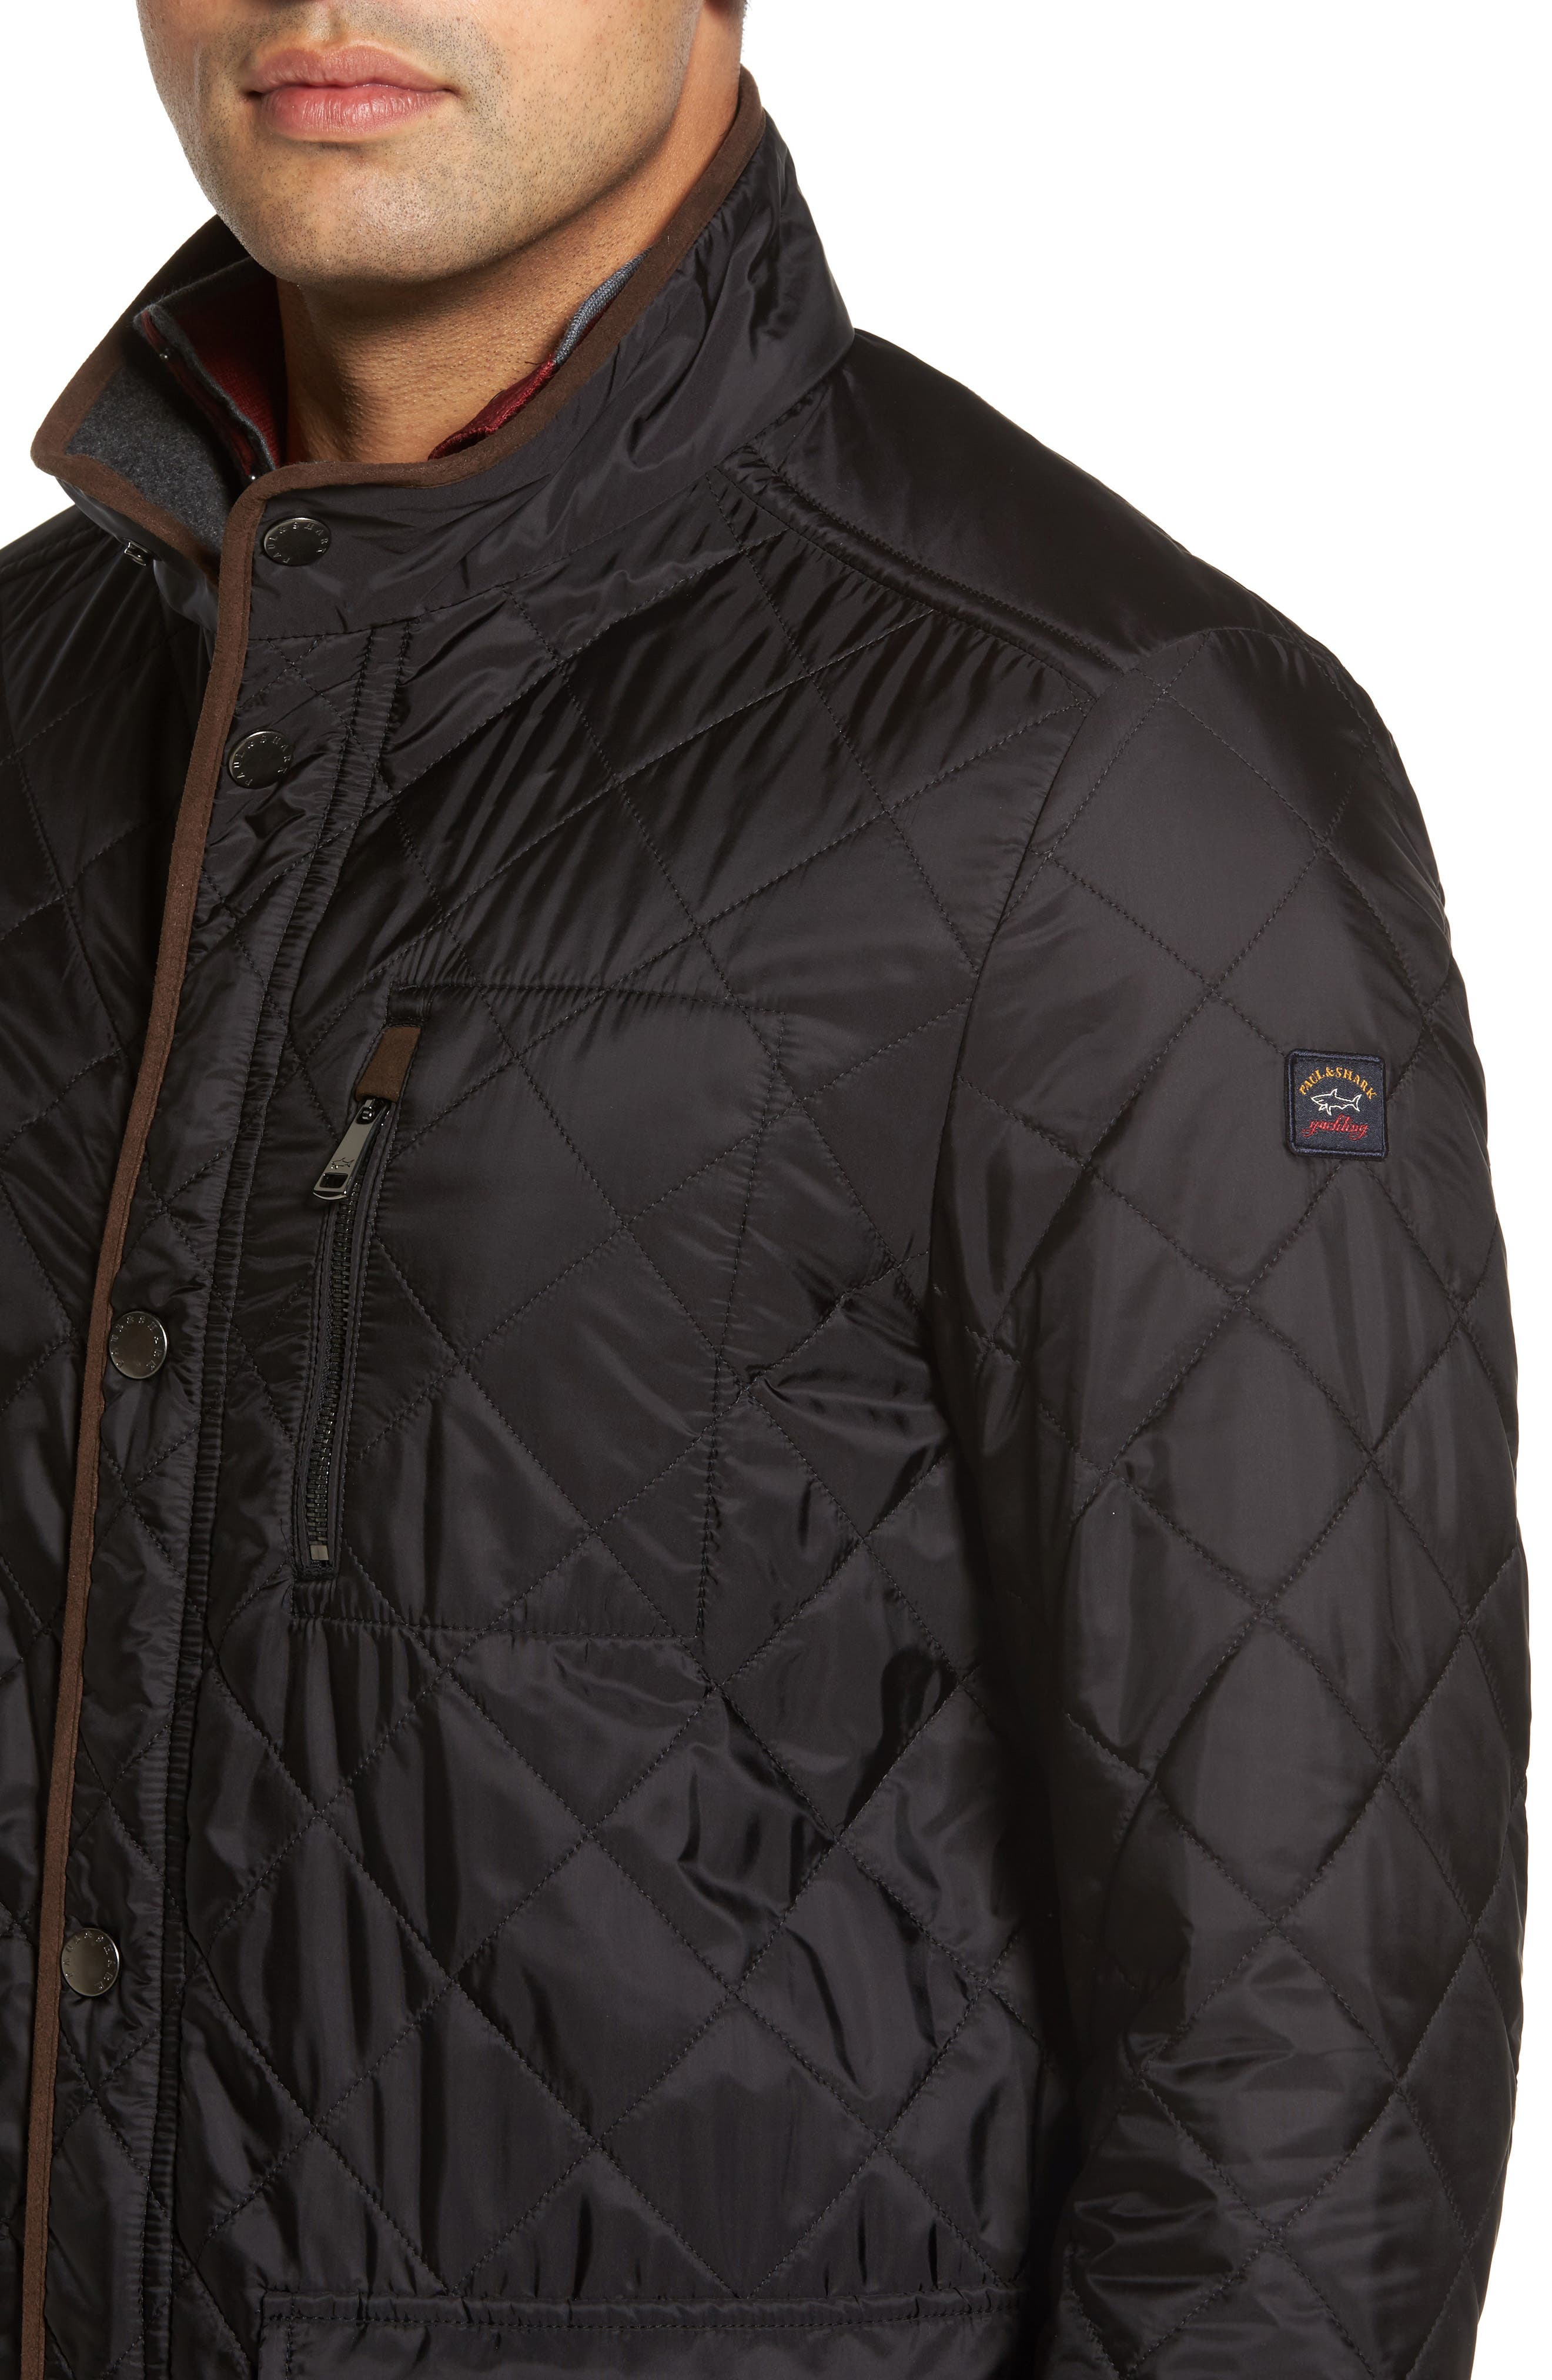 Paul&Shark Fleece Lined Quilted Jacket,                             Alternate thumbnail 4, color,                             001